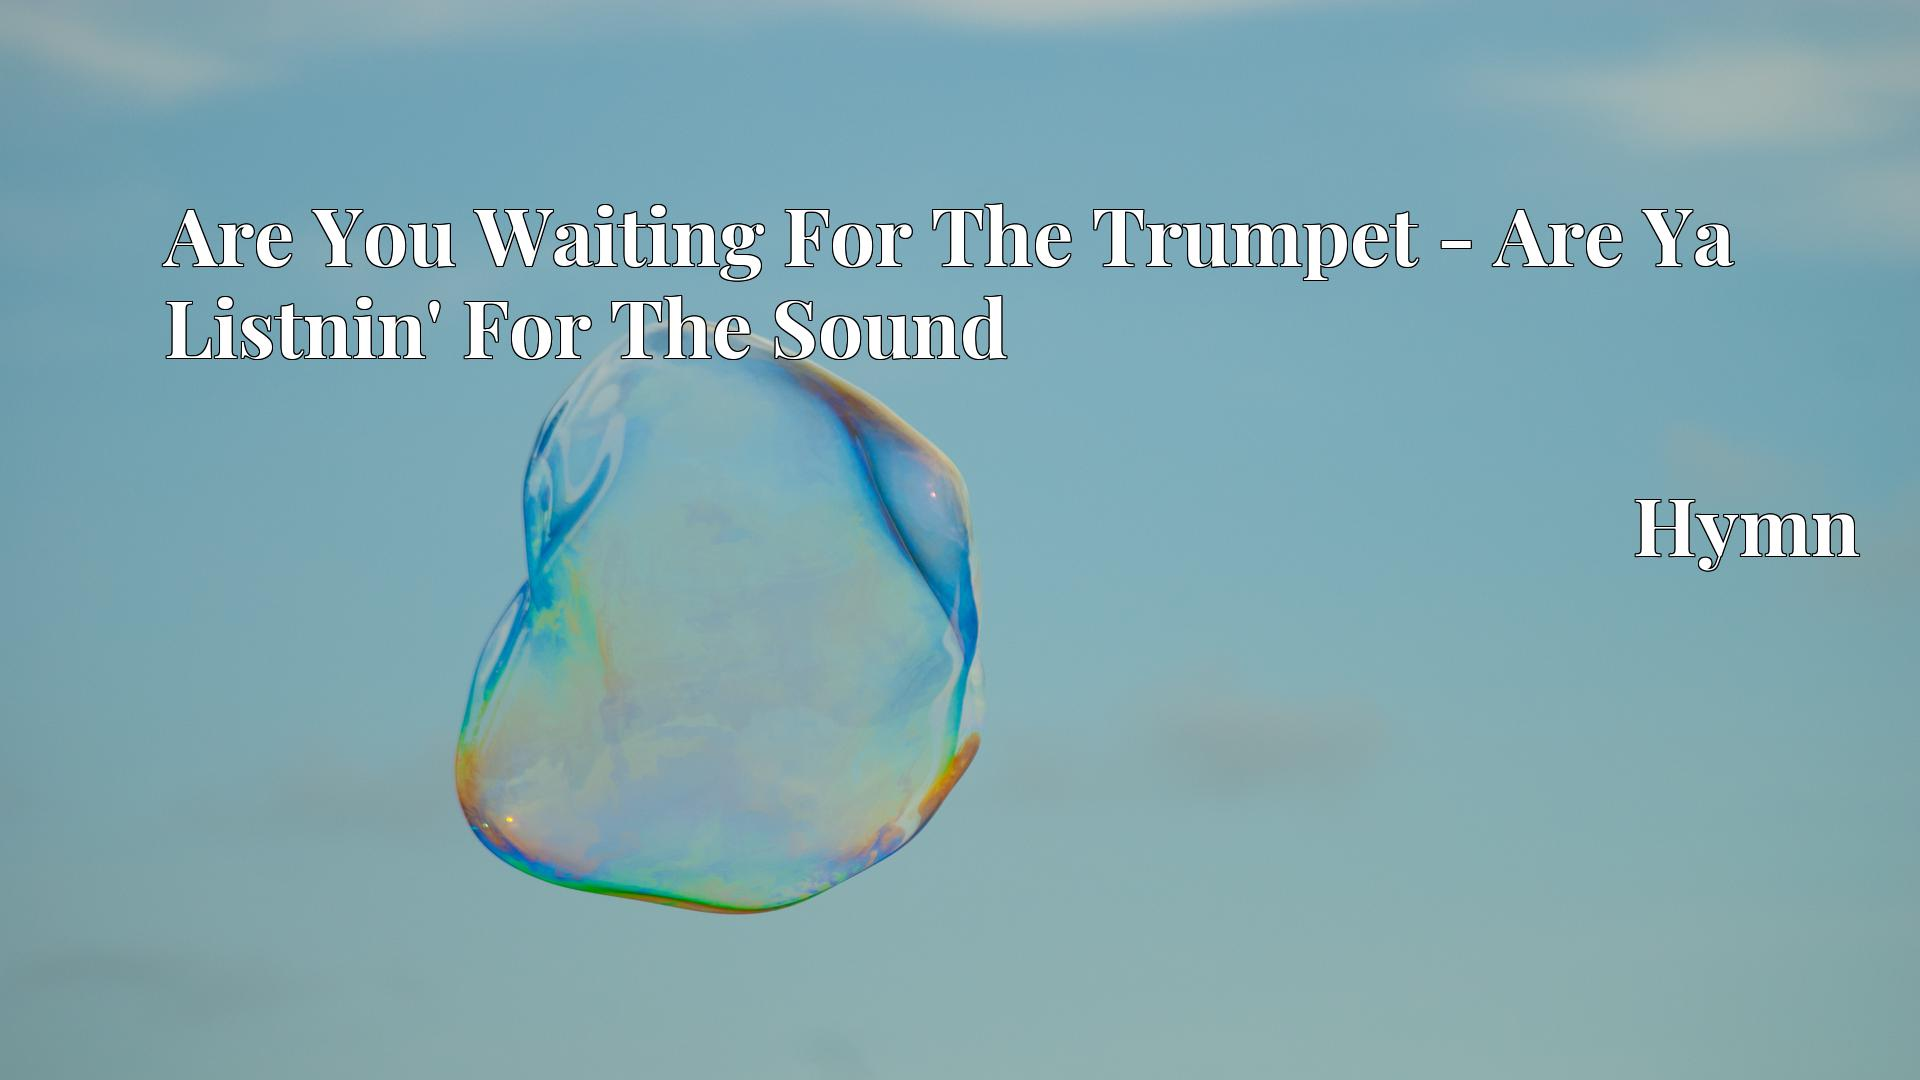 Are You Waiting For The Trumpet - Are Ya Listnin' For The Sound - Hymn